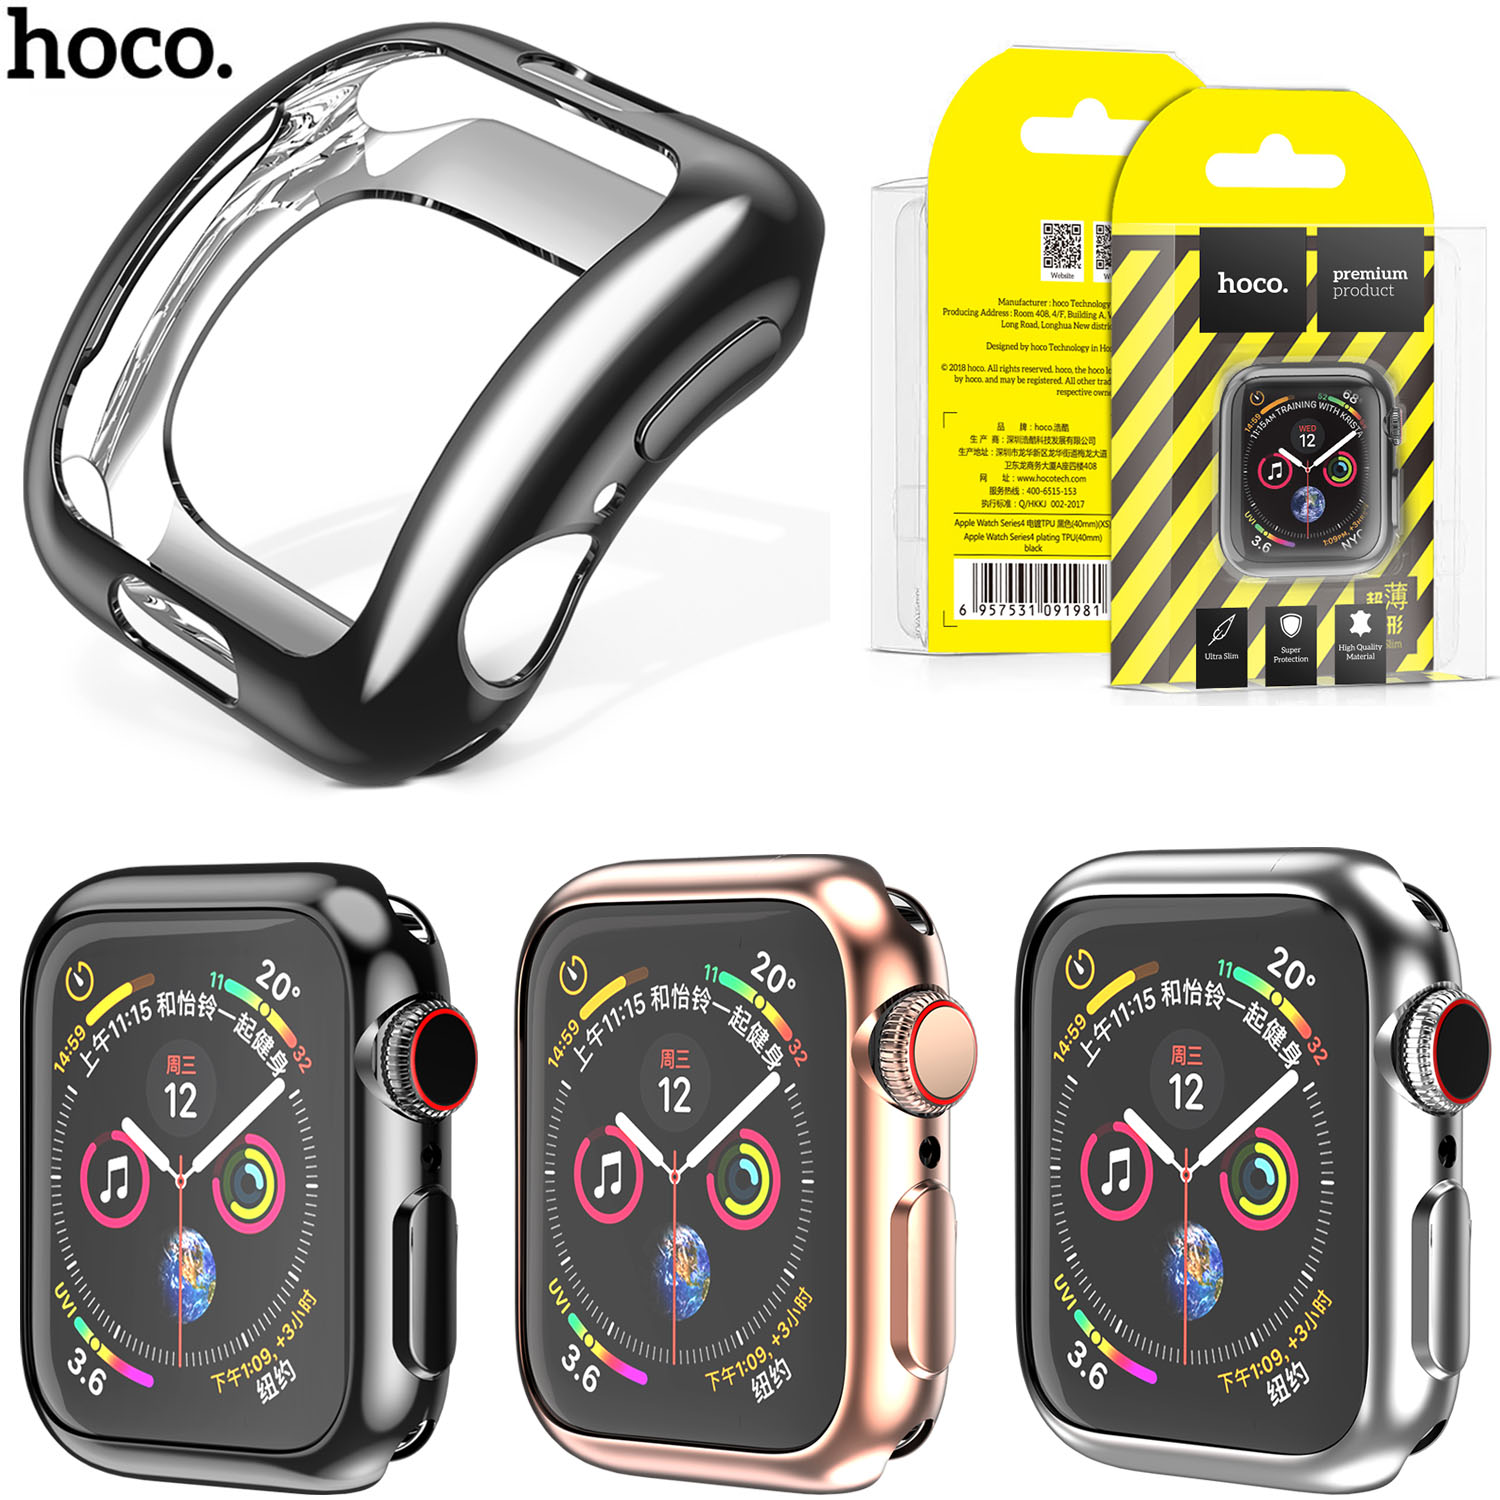 Original HOCO Plating Silicone Case for Apple Watch Series 4 Cover Soft TPU Watch Cover for iWatch 44mm 40mm Case BandOriginal HOCO Plating Silicone Case for Apple Watch Series 4 Cover Soft TPU Watch Cover for iWatch 44mm 40mm Case Band